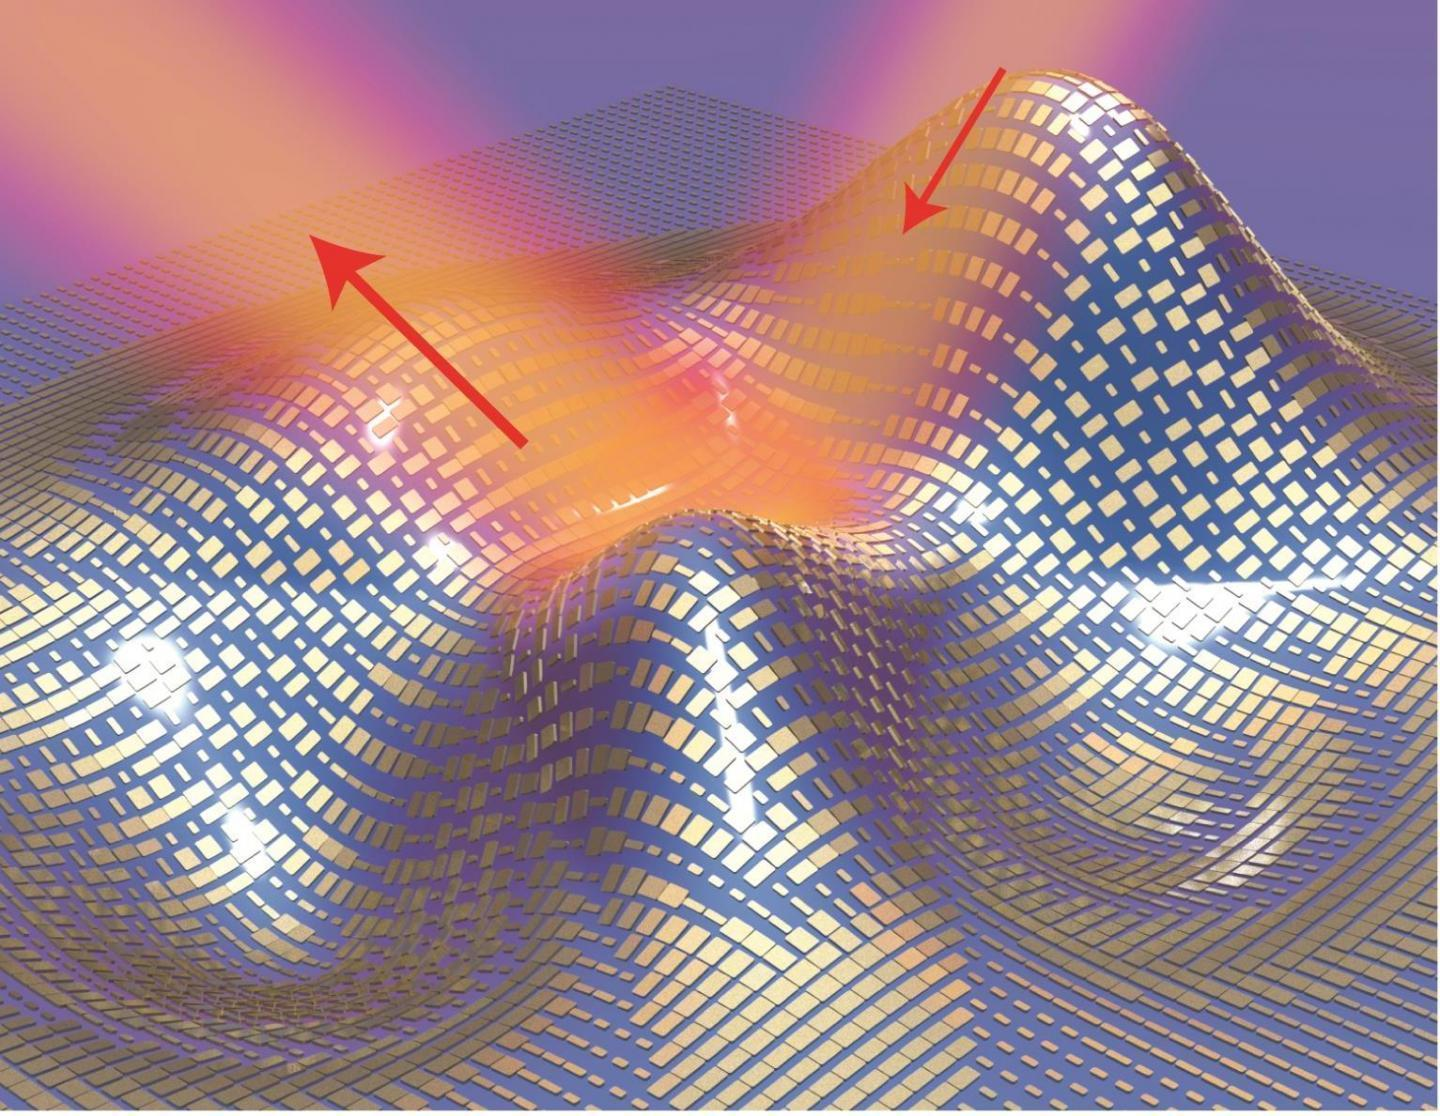 tiny-invisibility-cloak-gold-metamaterial